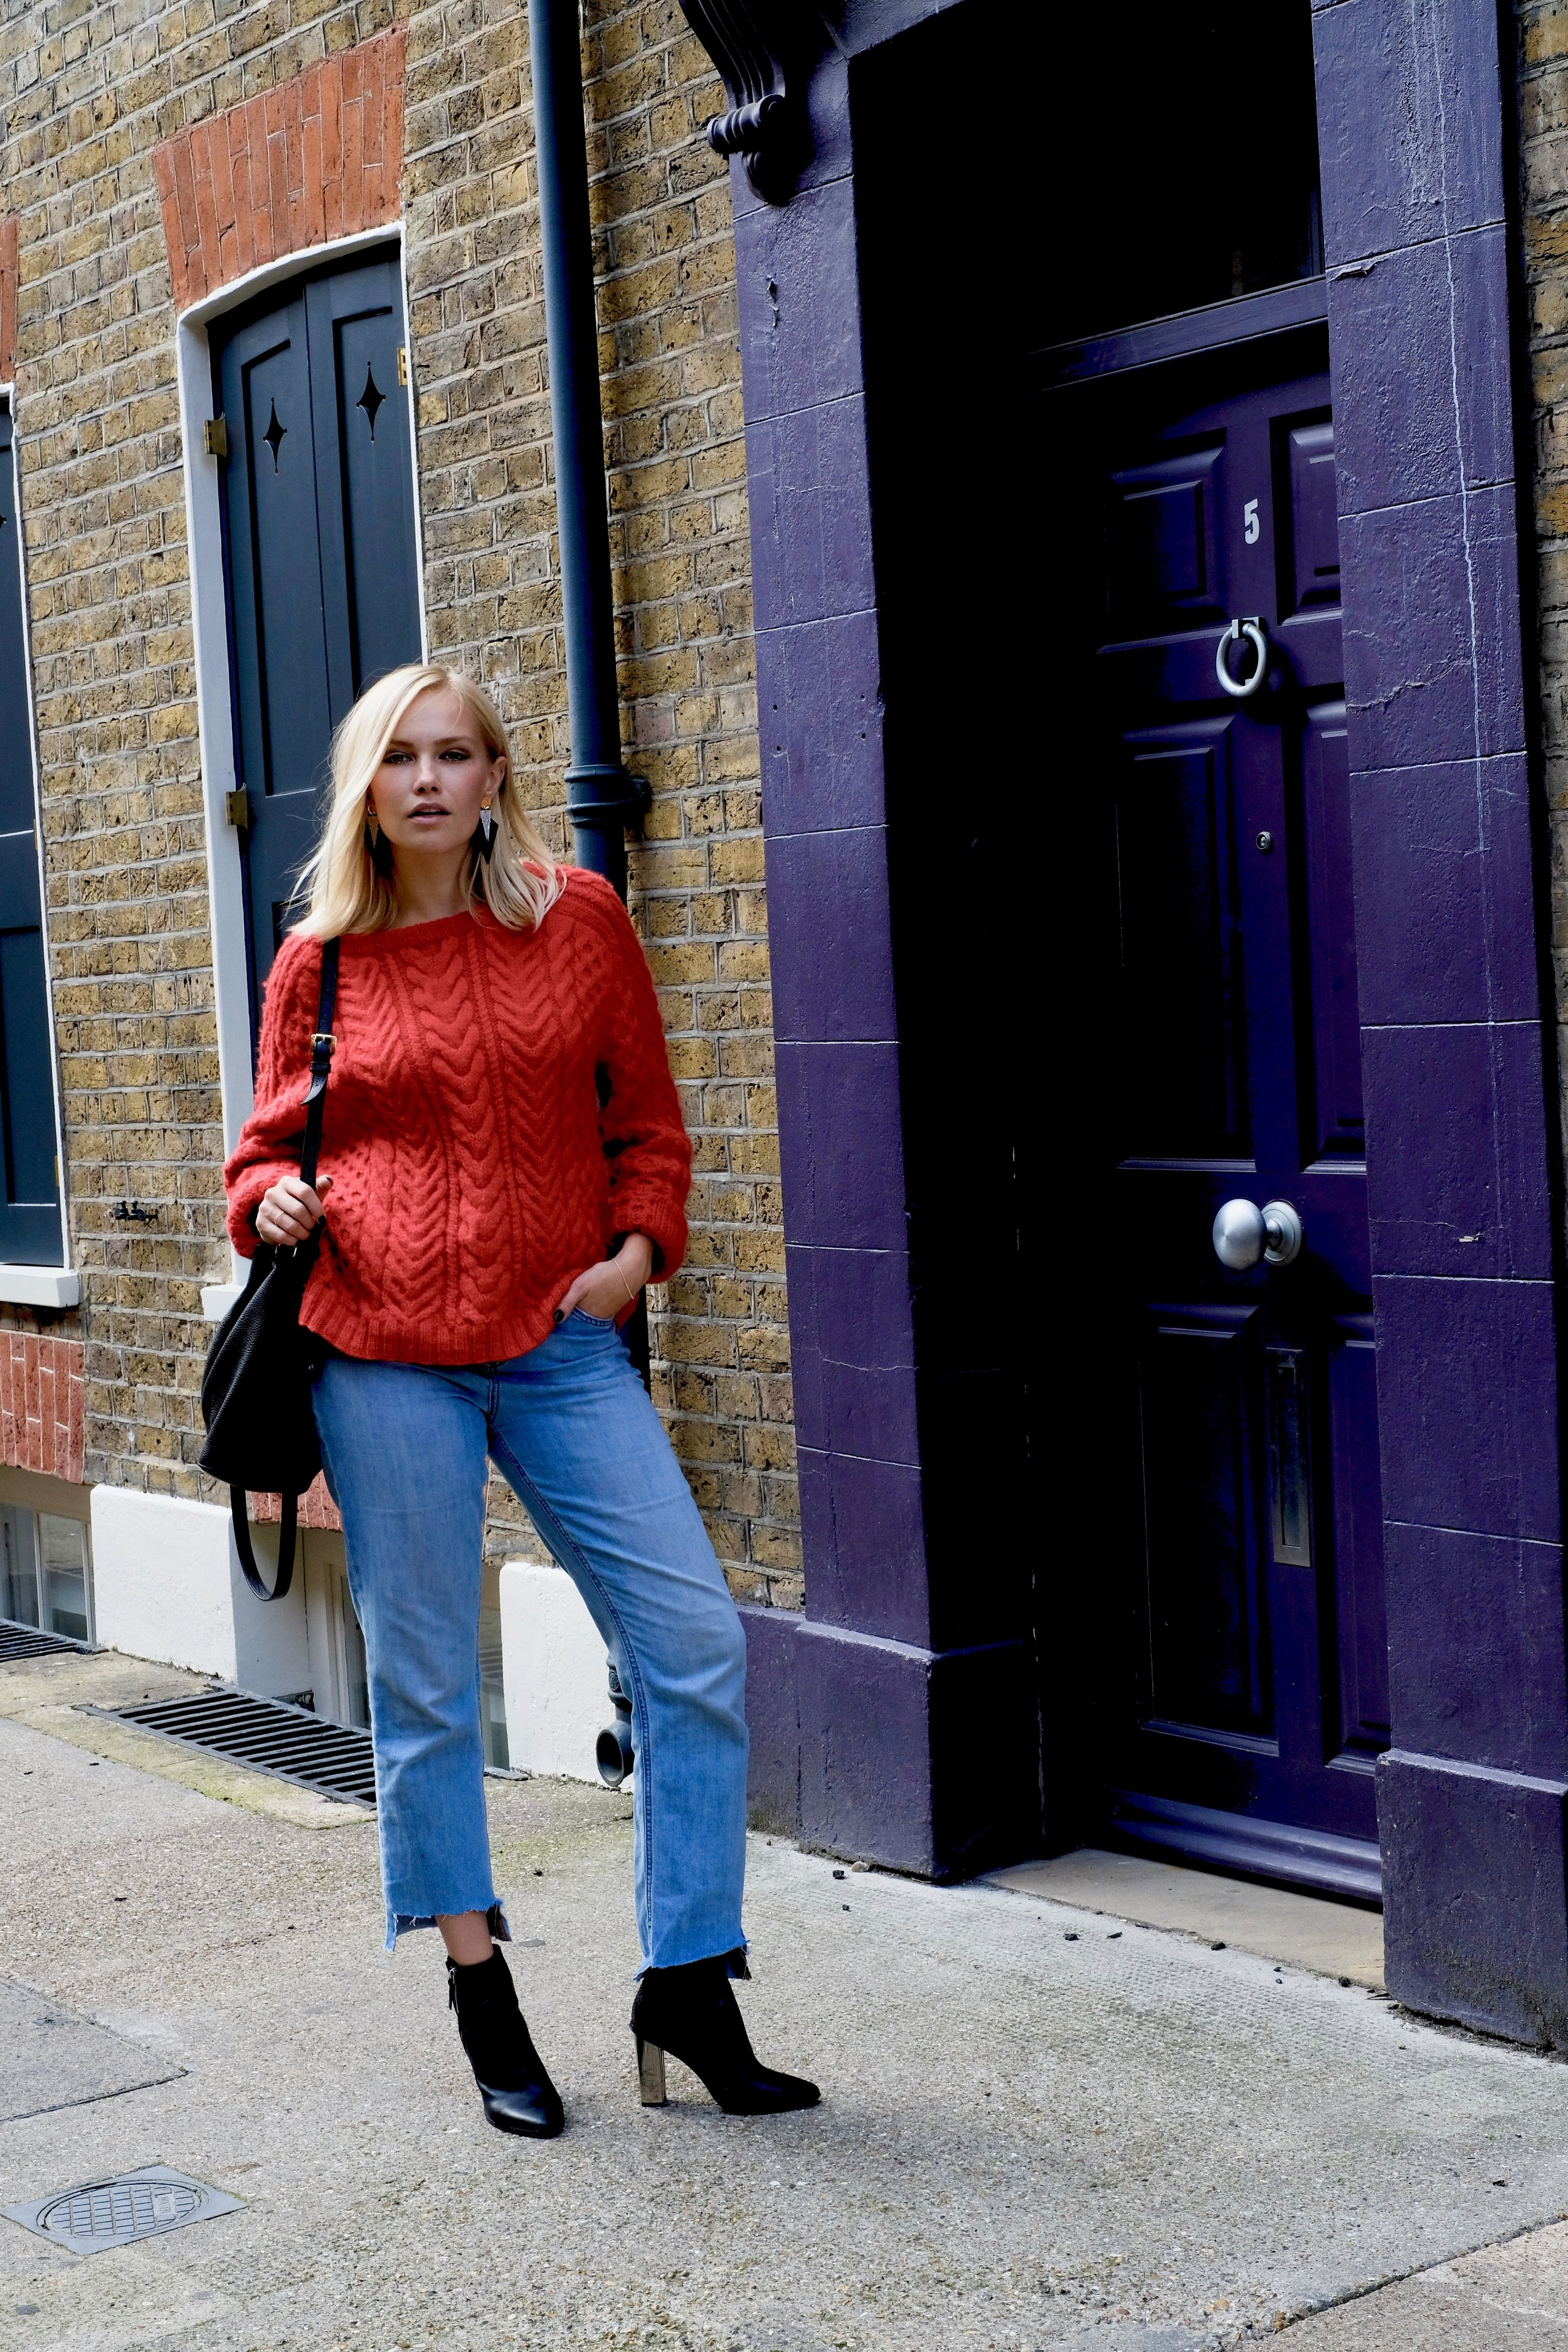 The jumper is hand knitted, and the pattern called Solveig and is from   Hanneli collection in collaboration with Sandnes Garn    The shoes are from     Aldo  , and the jeans are from   Noisy May